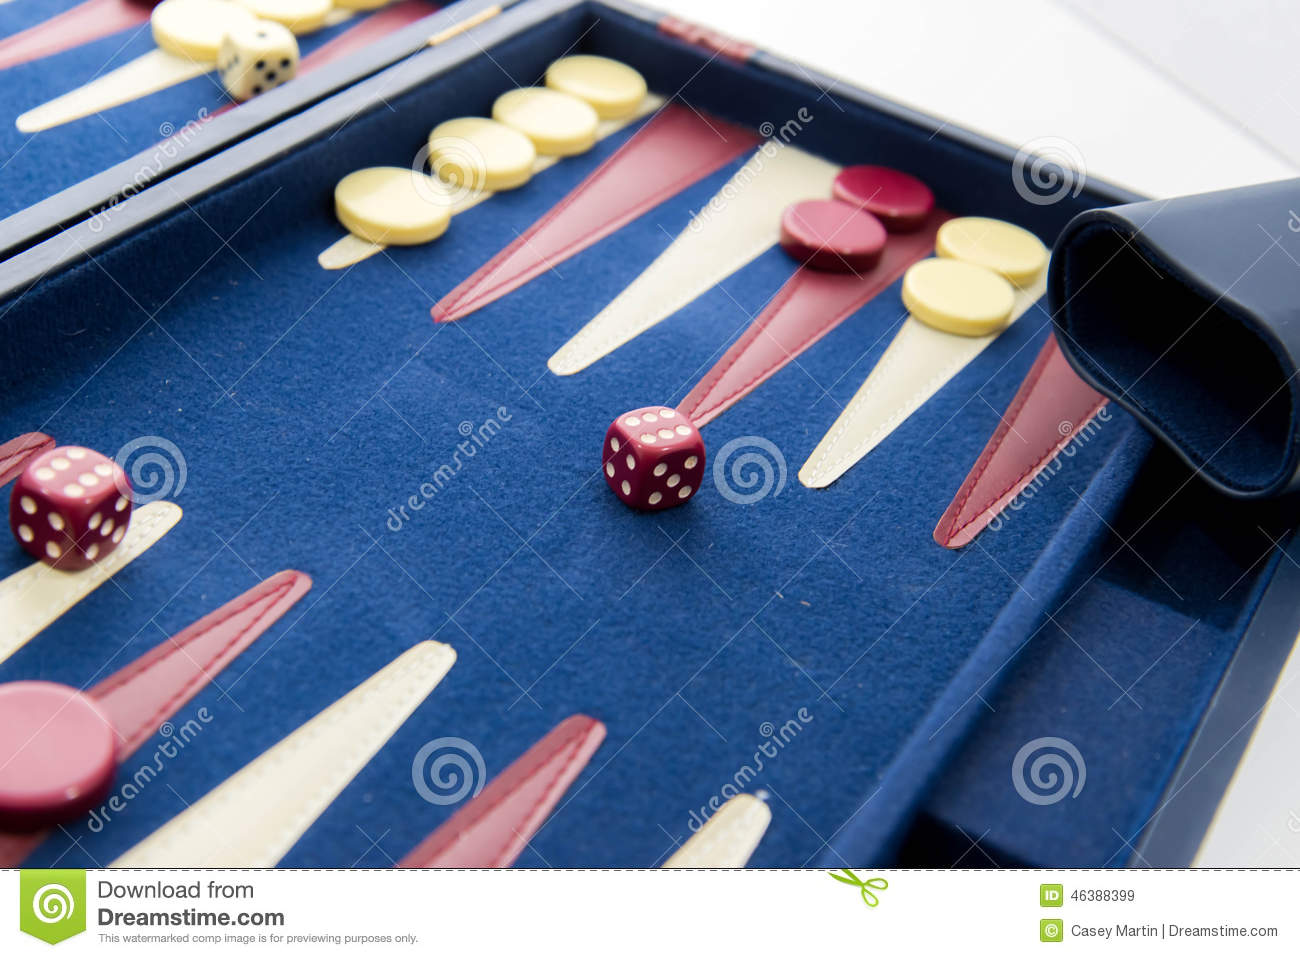 Case Blue Board Game : Board games backgammon in play stock image image of case play